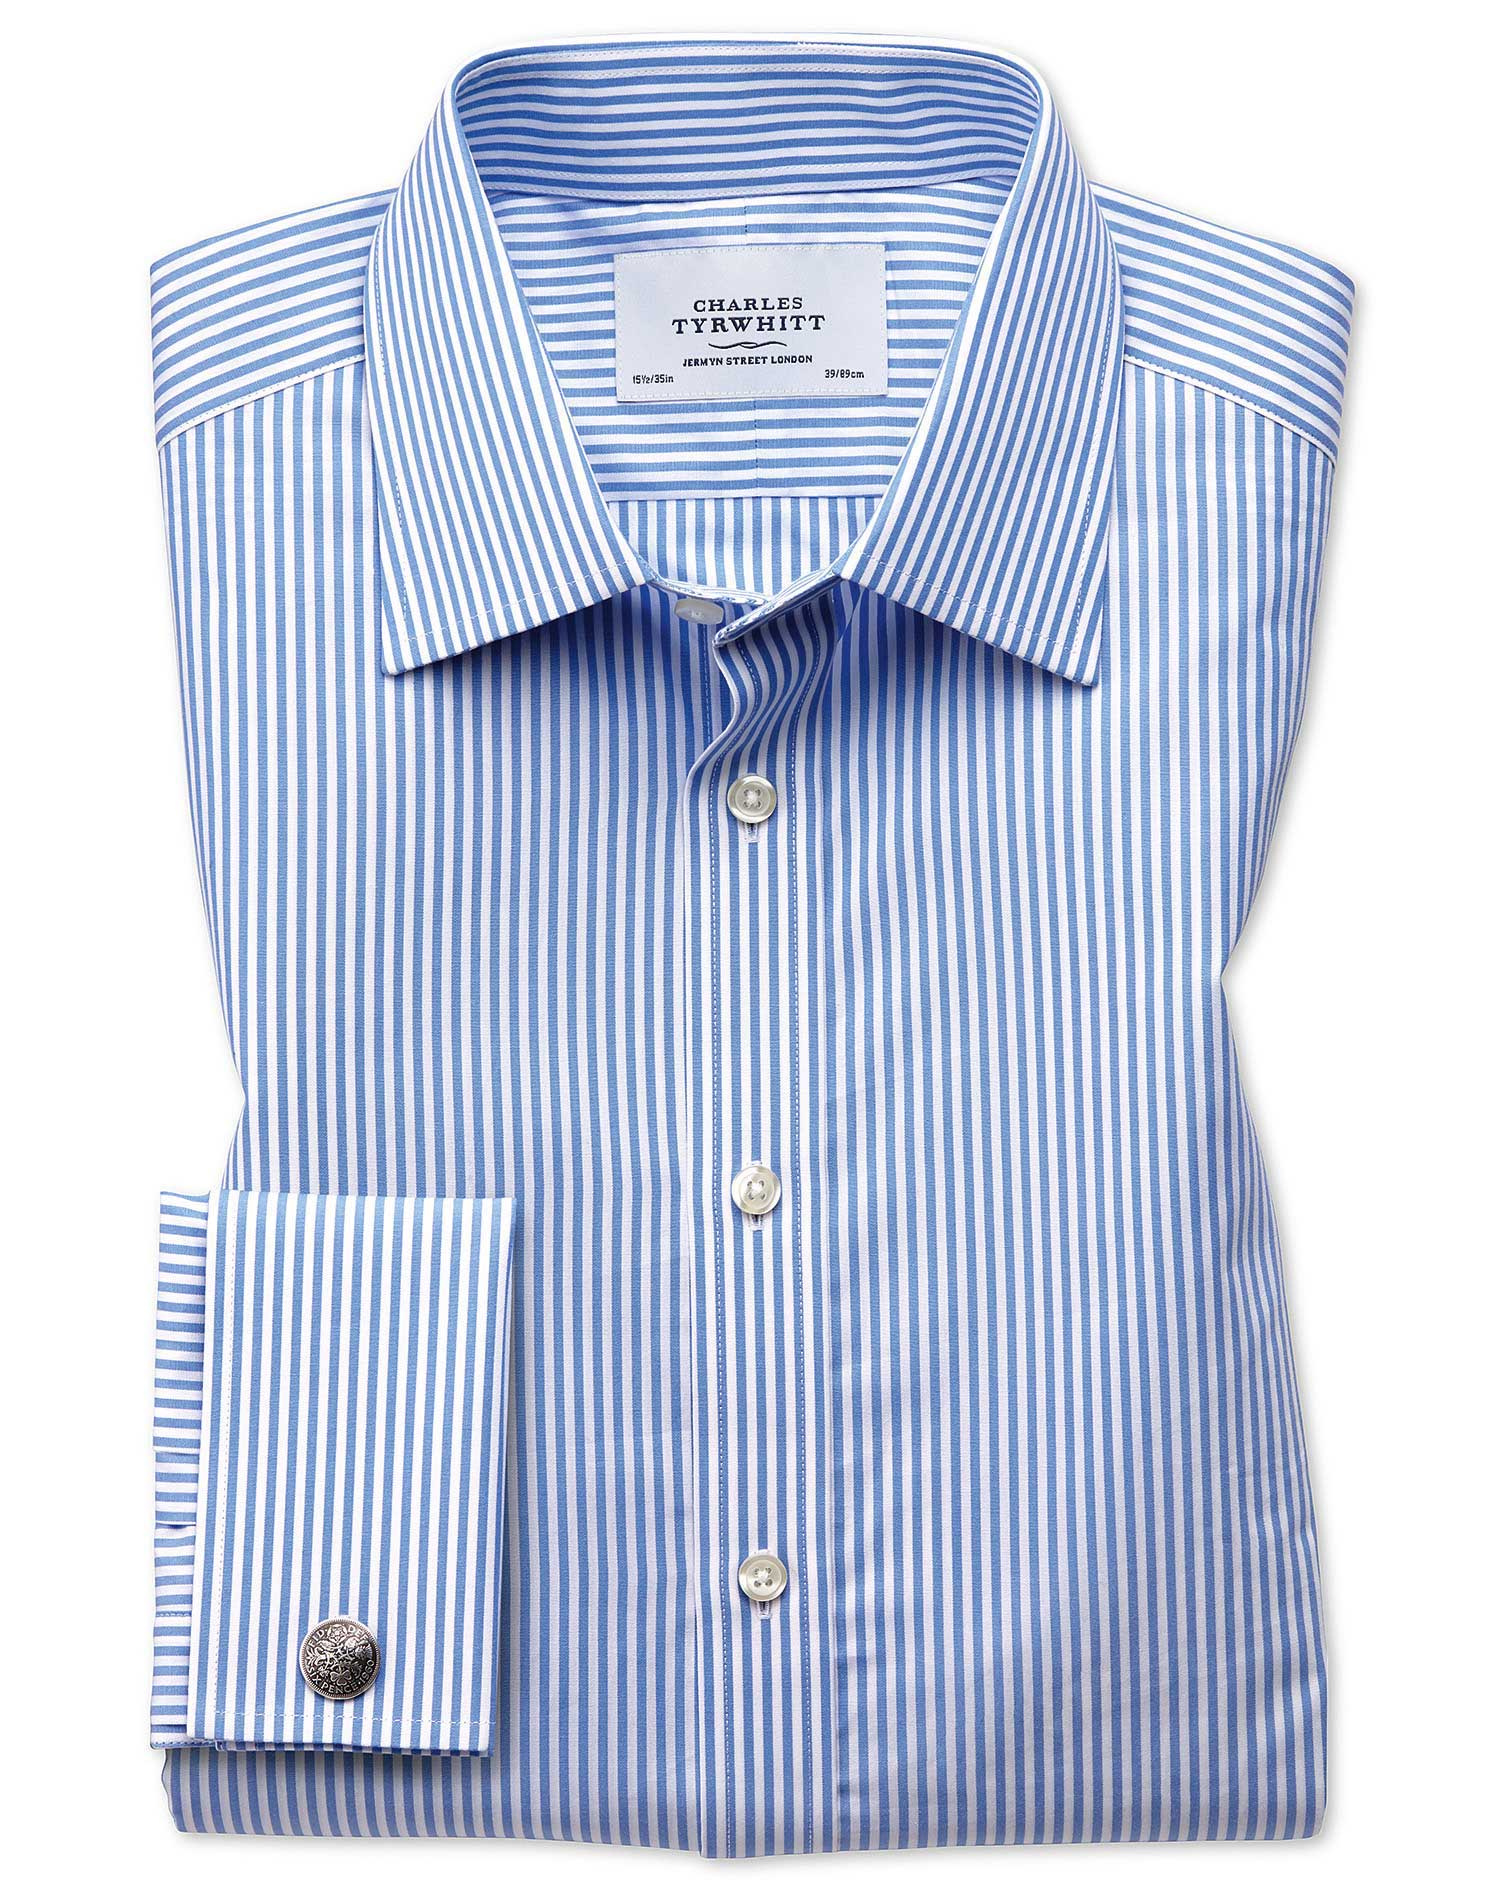 Extra Slim Fit Bengal Stripe Sky Blue Cotton Formal Shirt Double Cuff Size 17.5/36 by Charles Tyrwhi